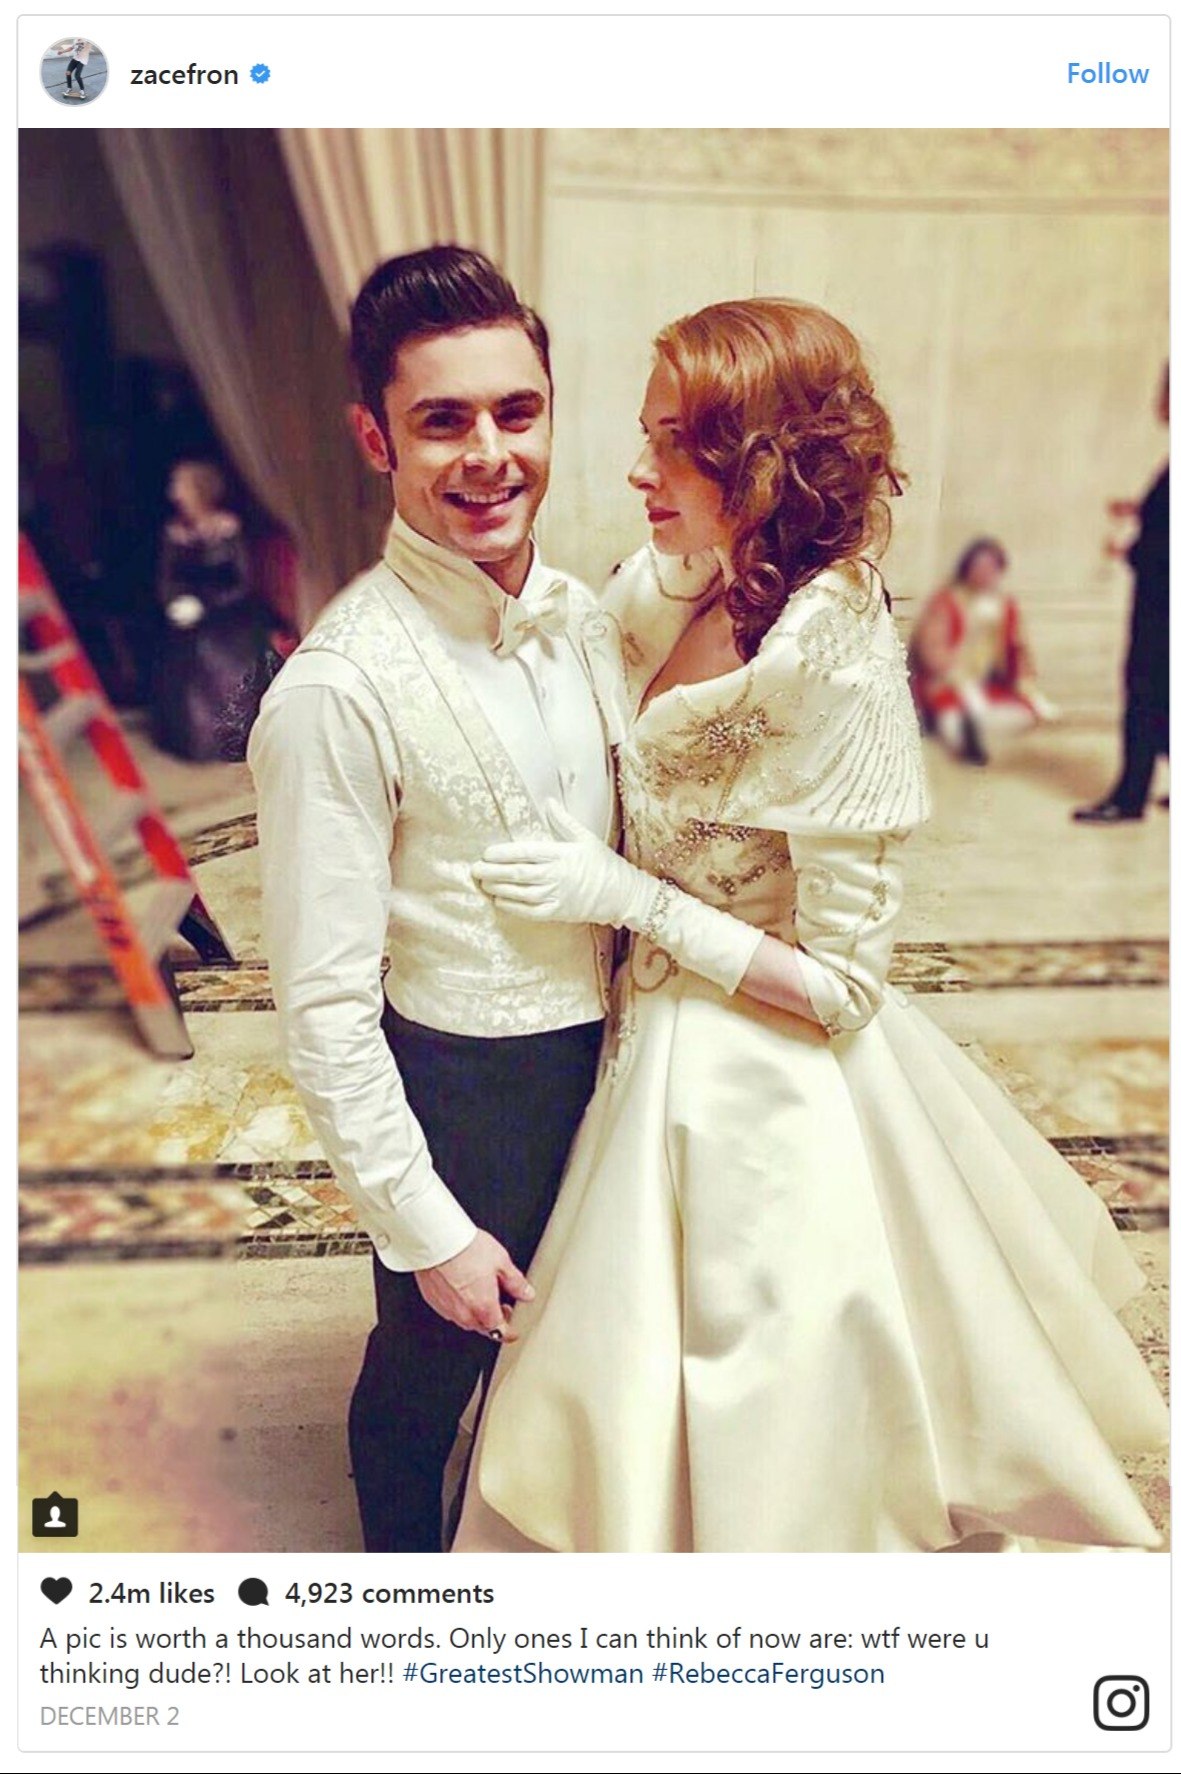 Zac Efron and Rebecca Ferguson are dressed up in a matching white dress. They are standing close and Rebecca is looking into Zac's eyes.